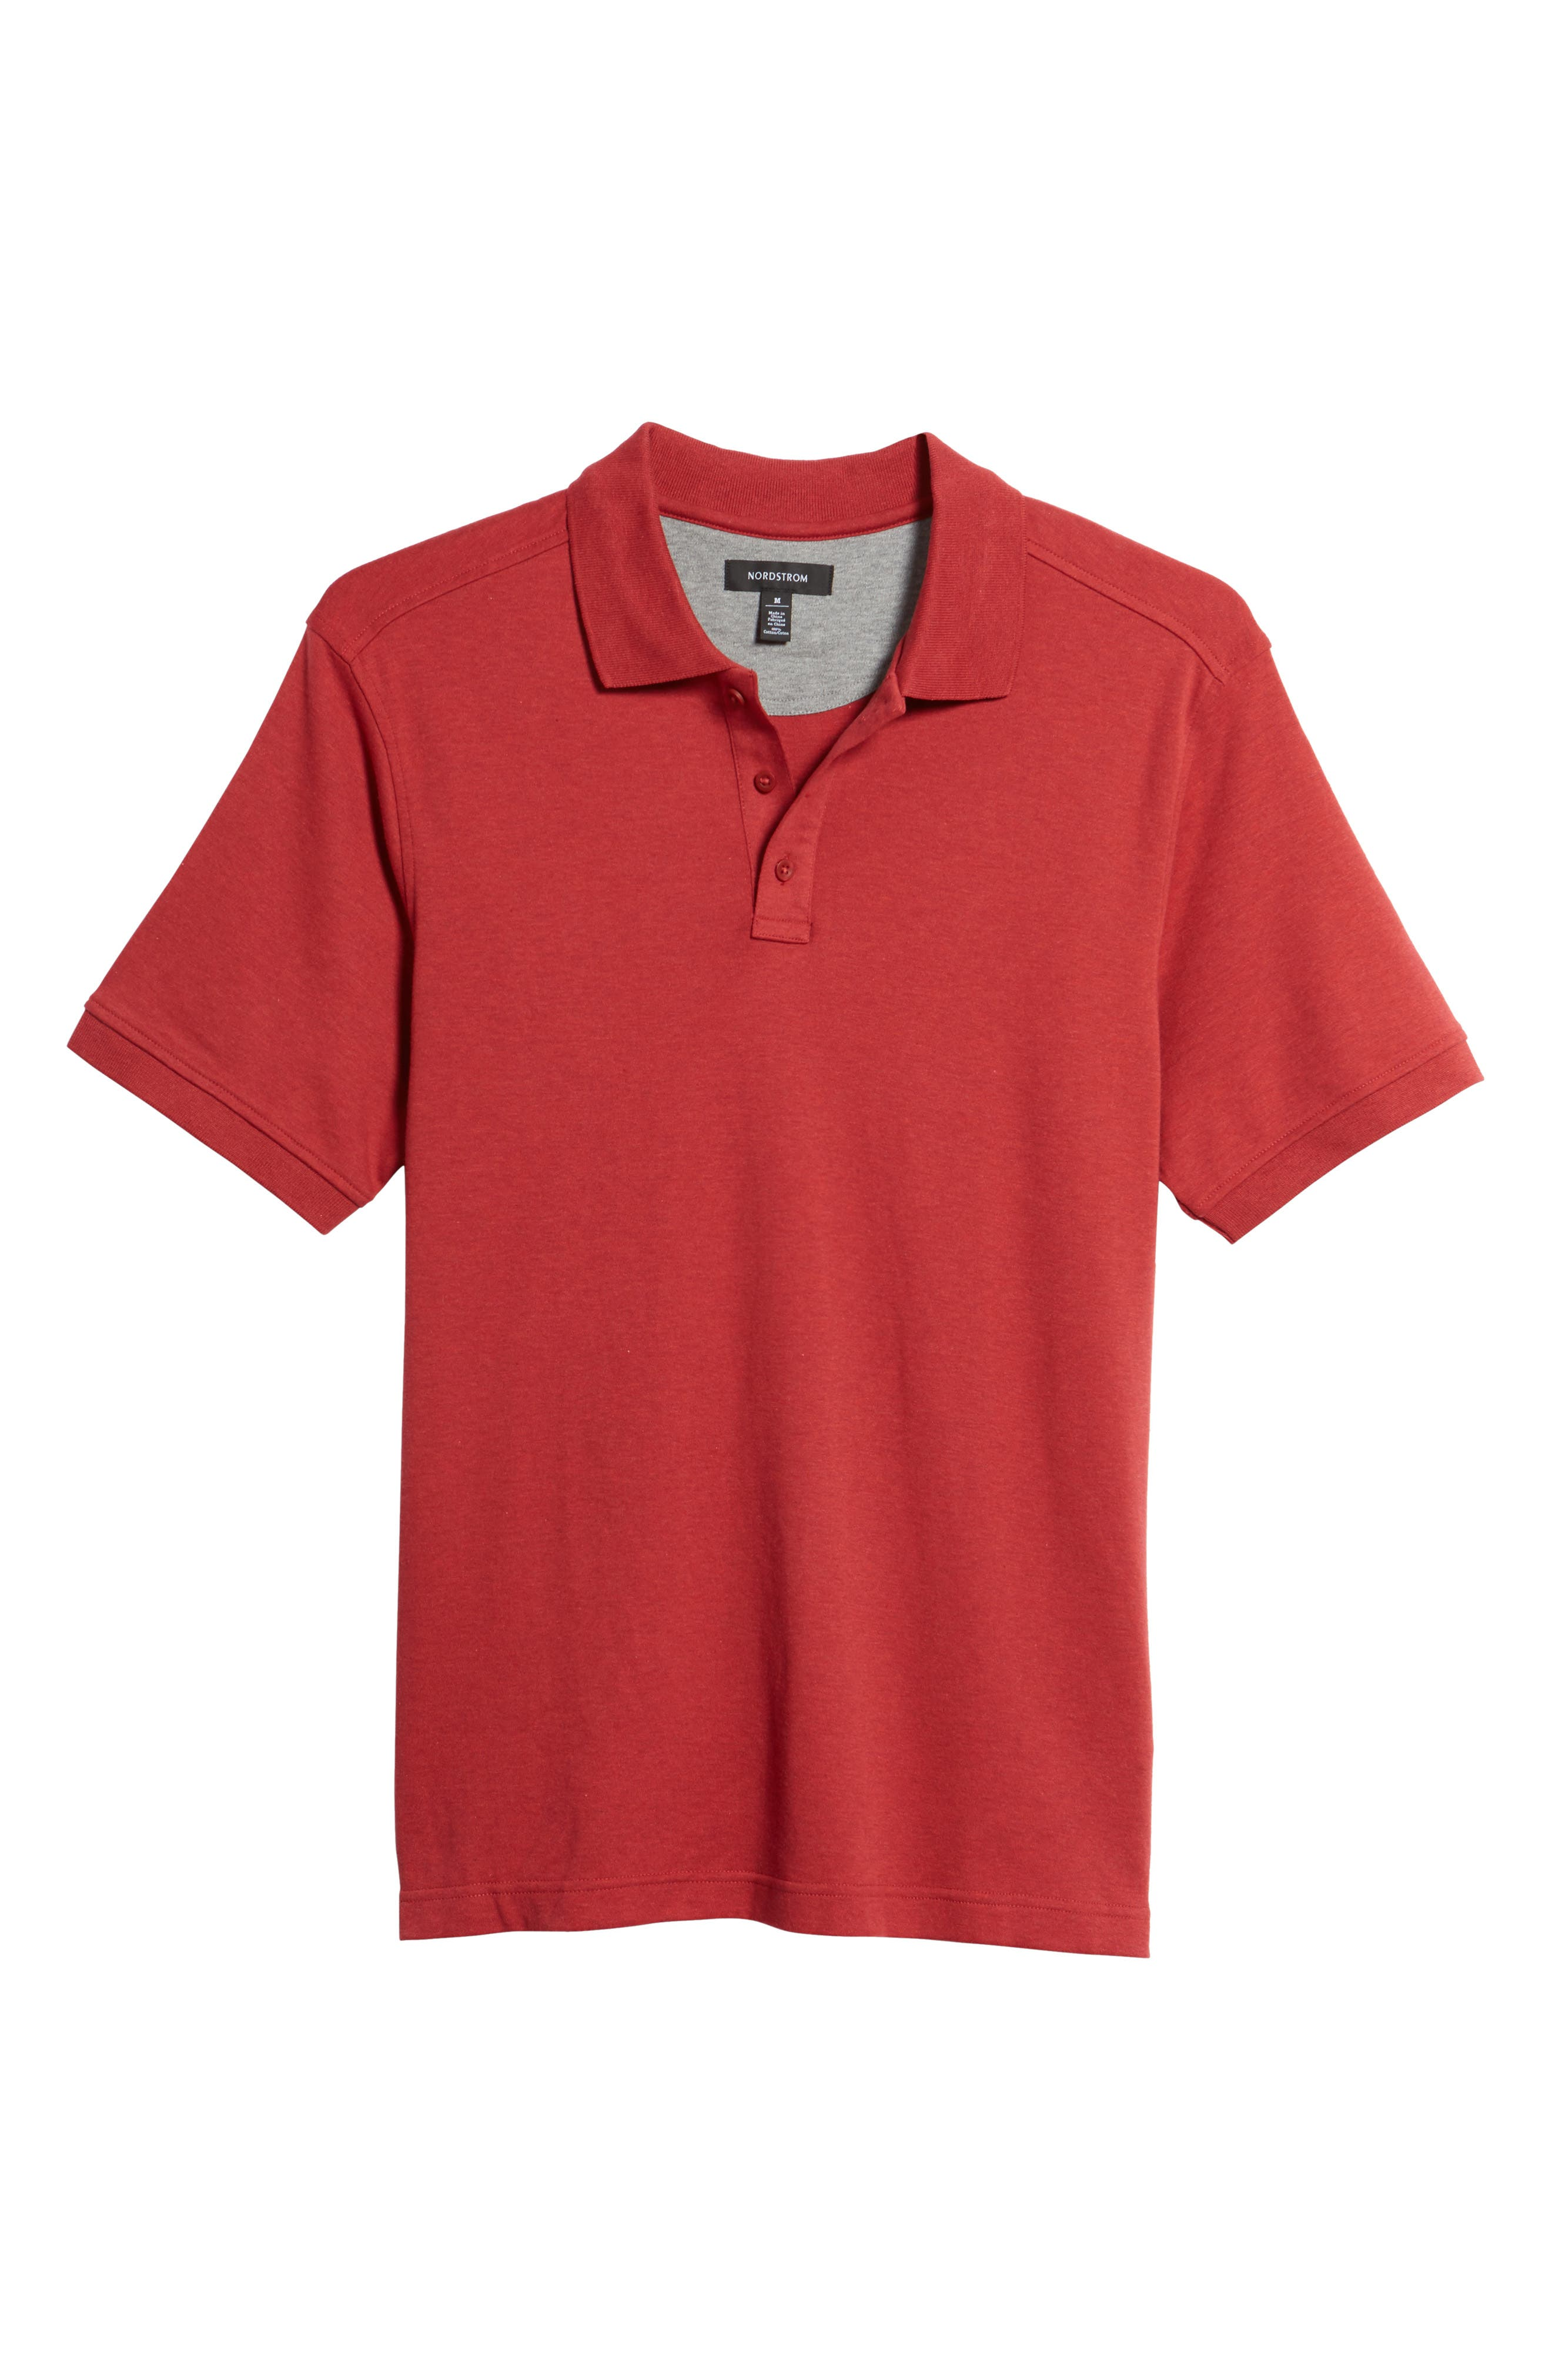 Regular Fit Interlock Knit Polo,                         Main,                         color, Red Rosewood Heather